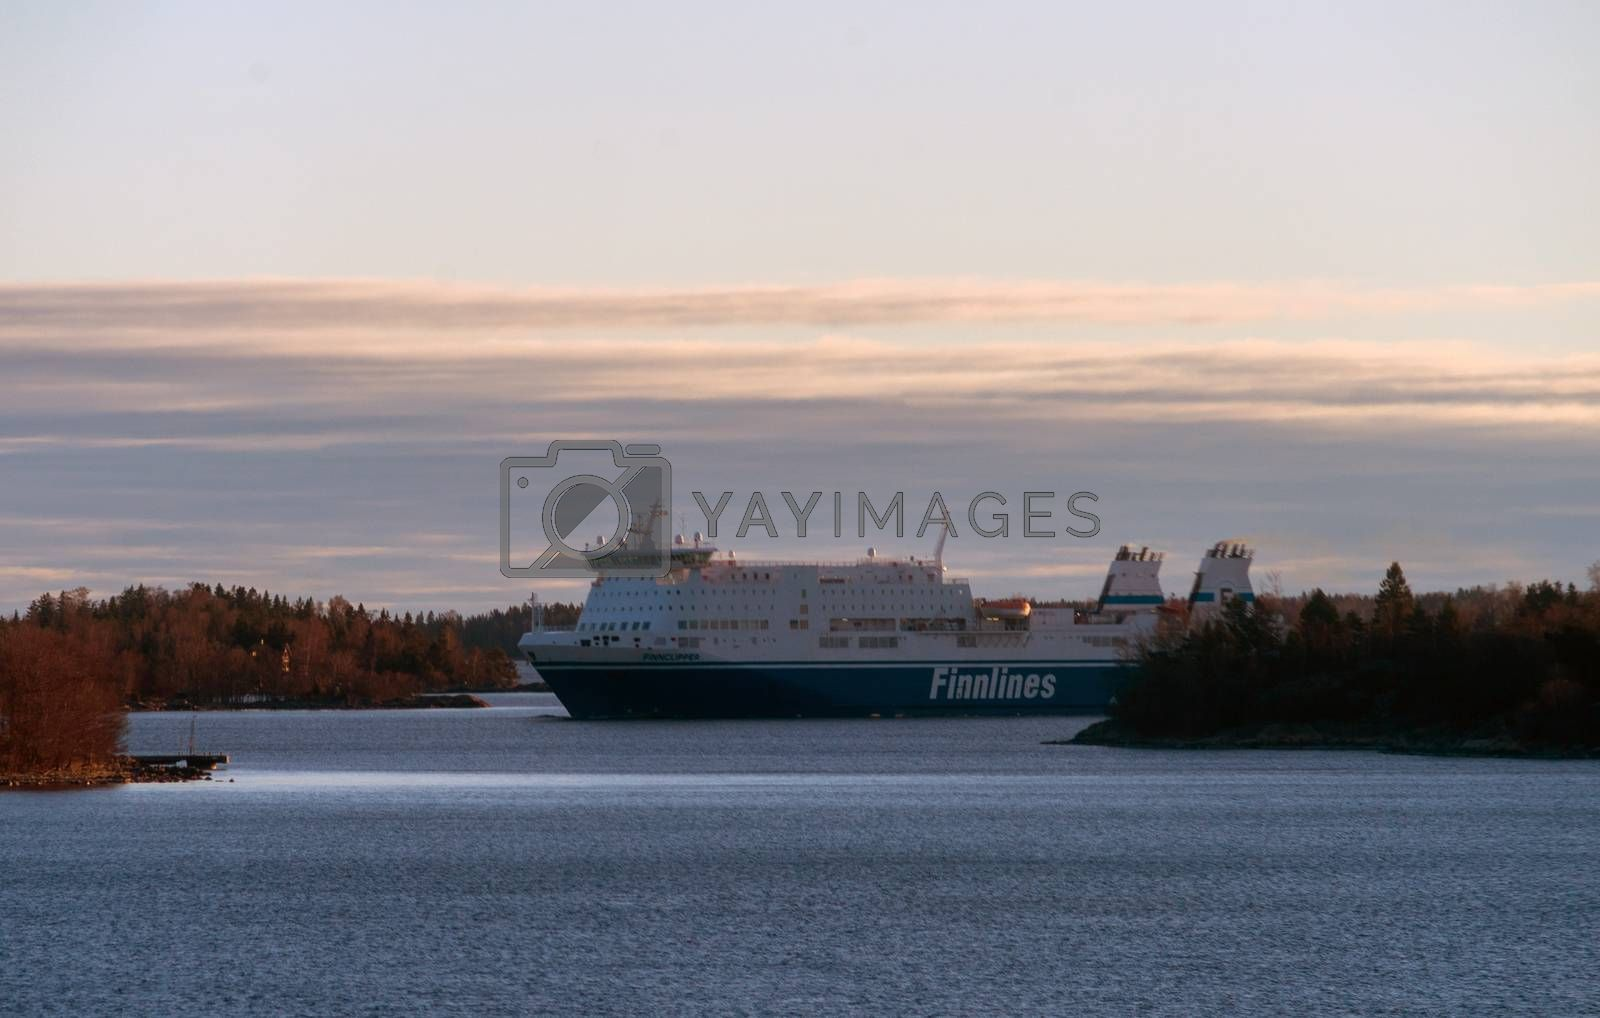 22 April 2019, Stockholm, Sweden. High-speed passenger and car ferry of the Finnish shipping concern FINNLINES Finnclipper equipped with rotary sail in Stockholm skerries.